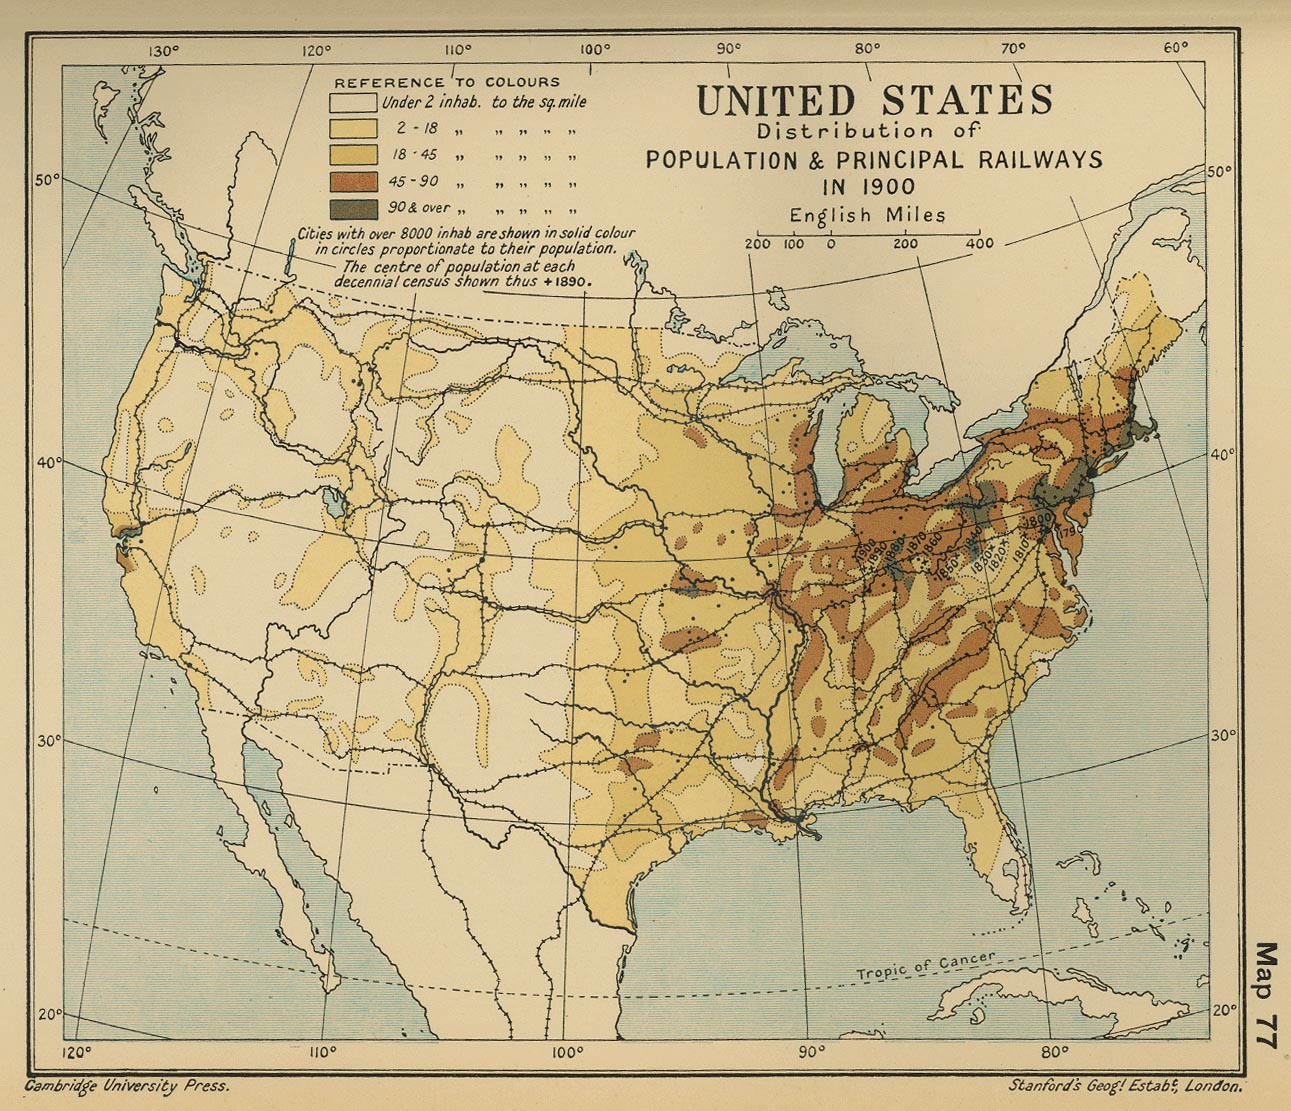 map 76 united states distribution of population principal railways in 1900